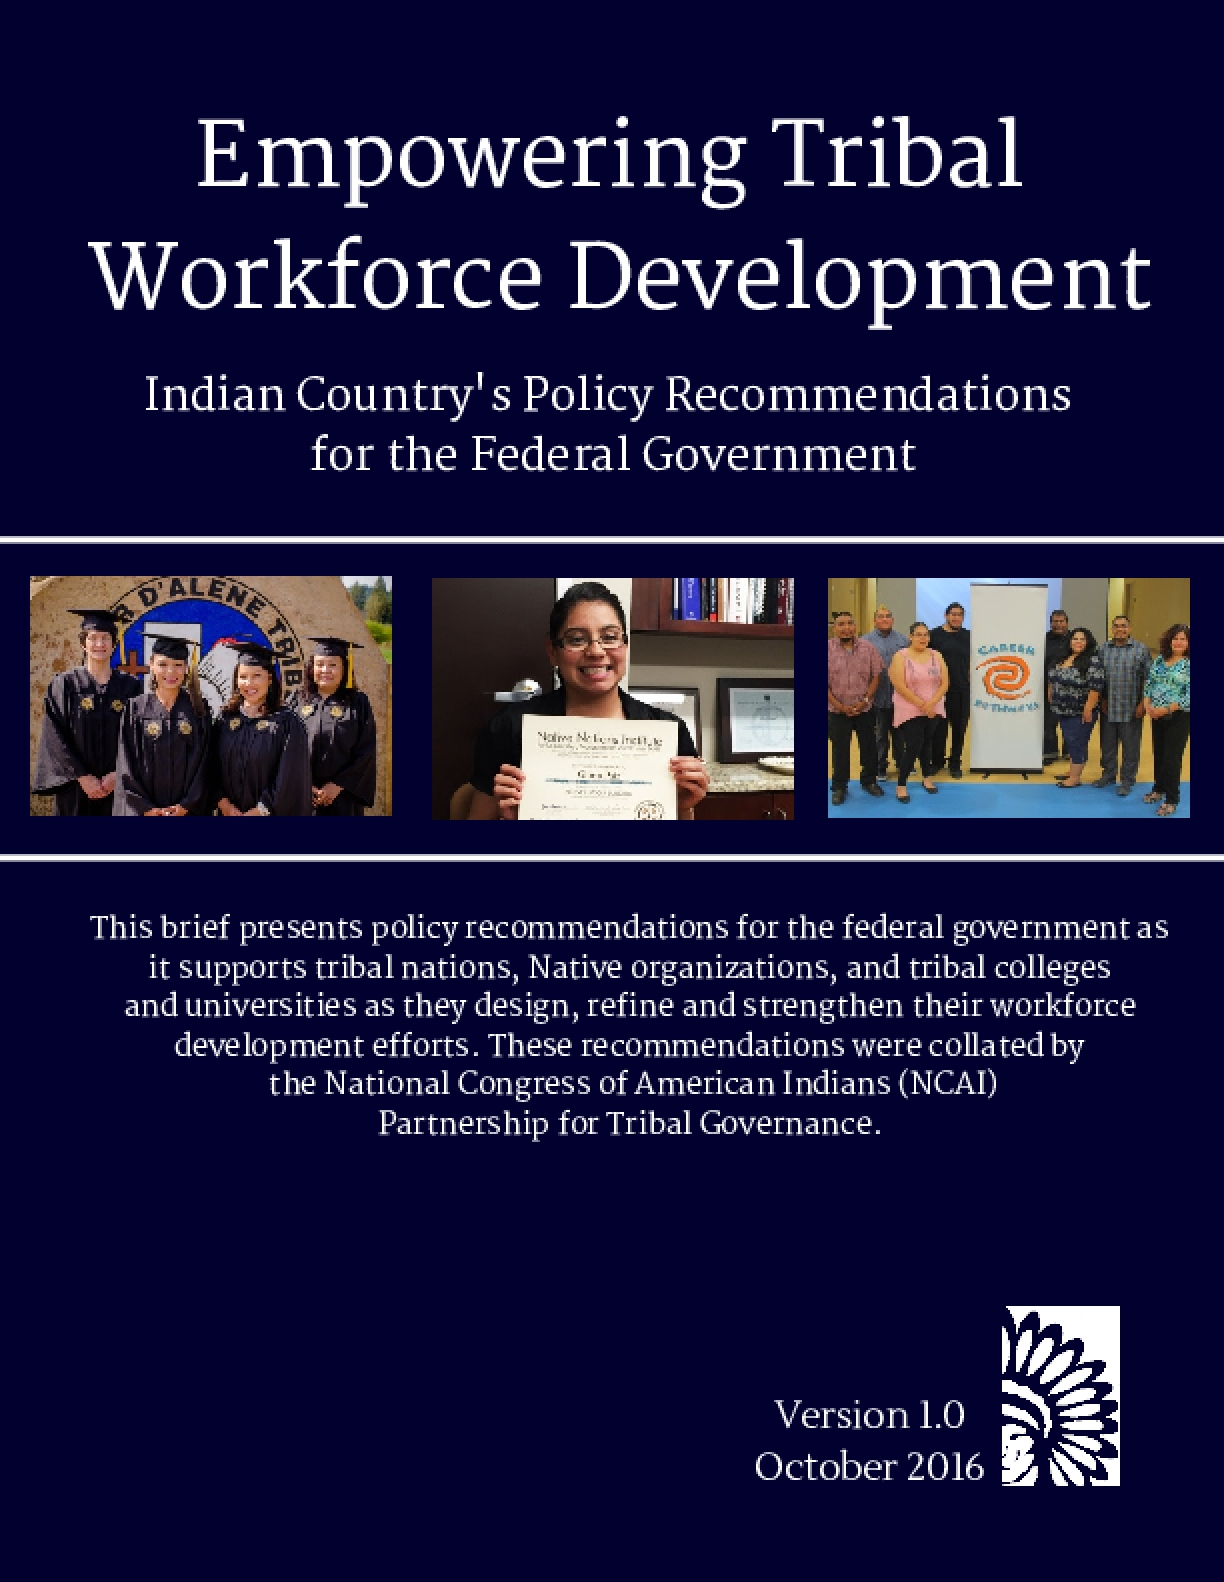 Empowering Tribal Workforce Development - Indian Country's Policy Recommendation for the Federal Government